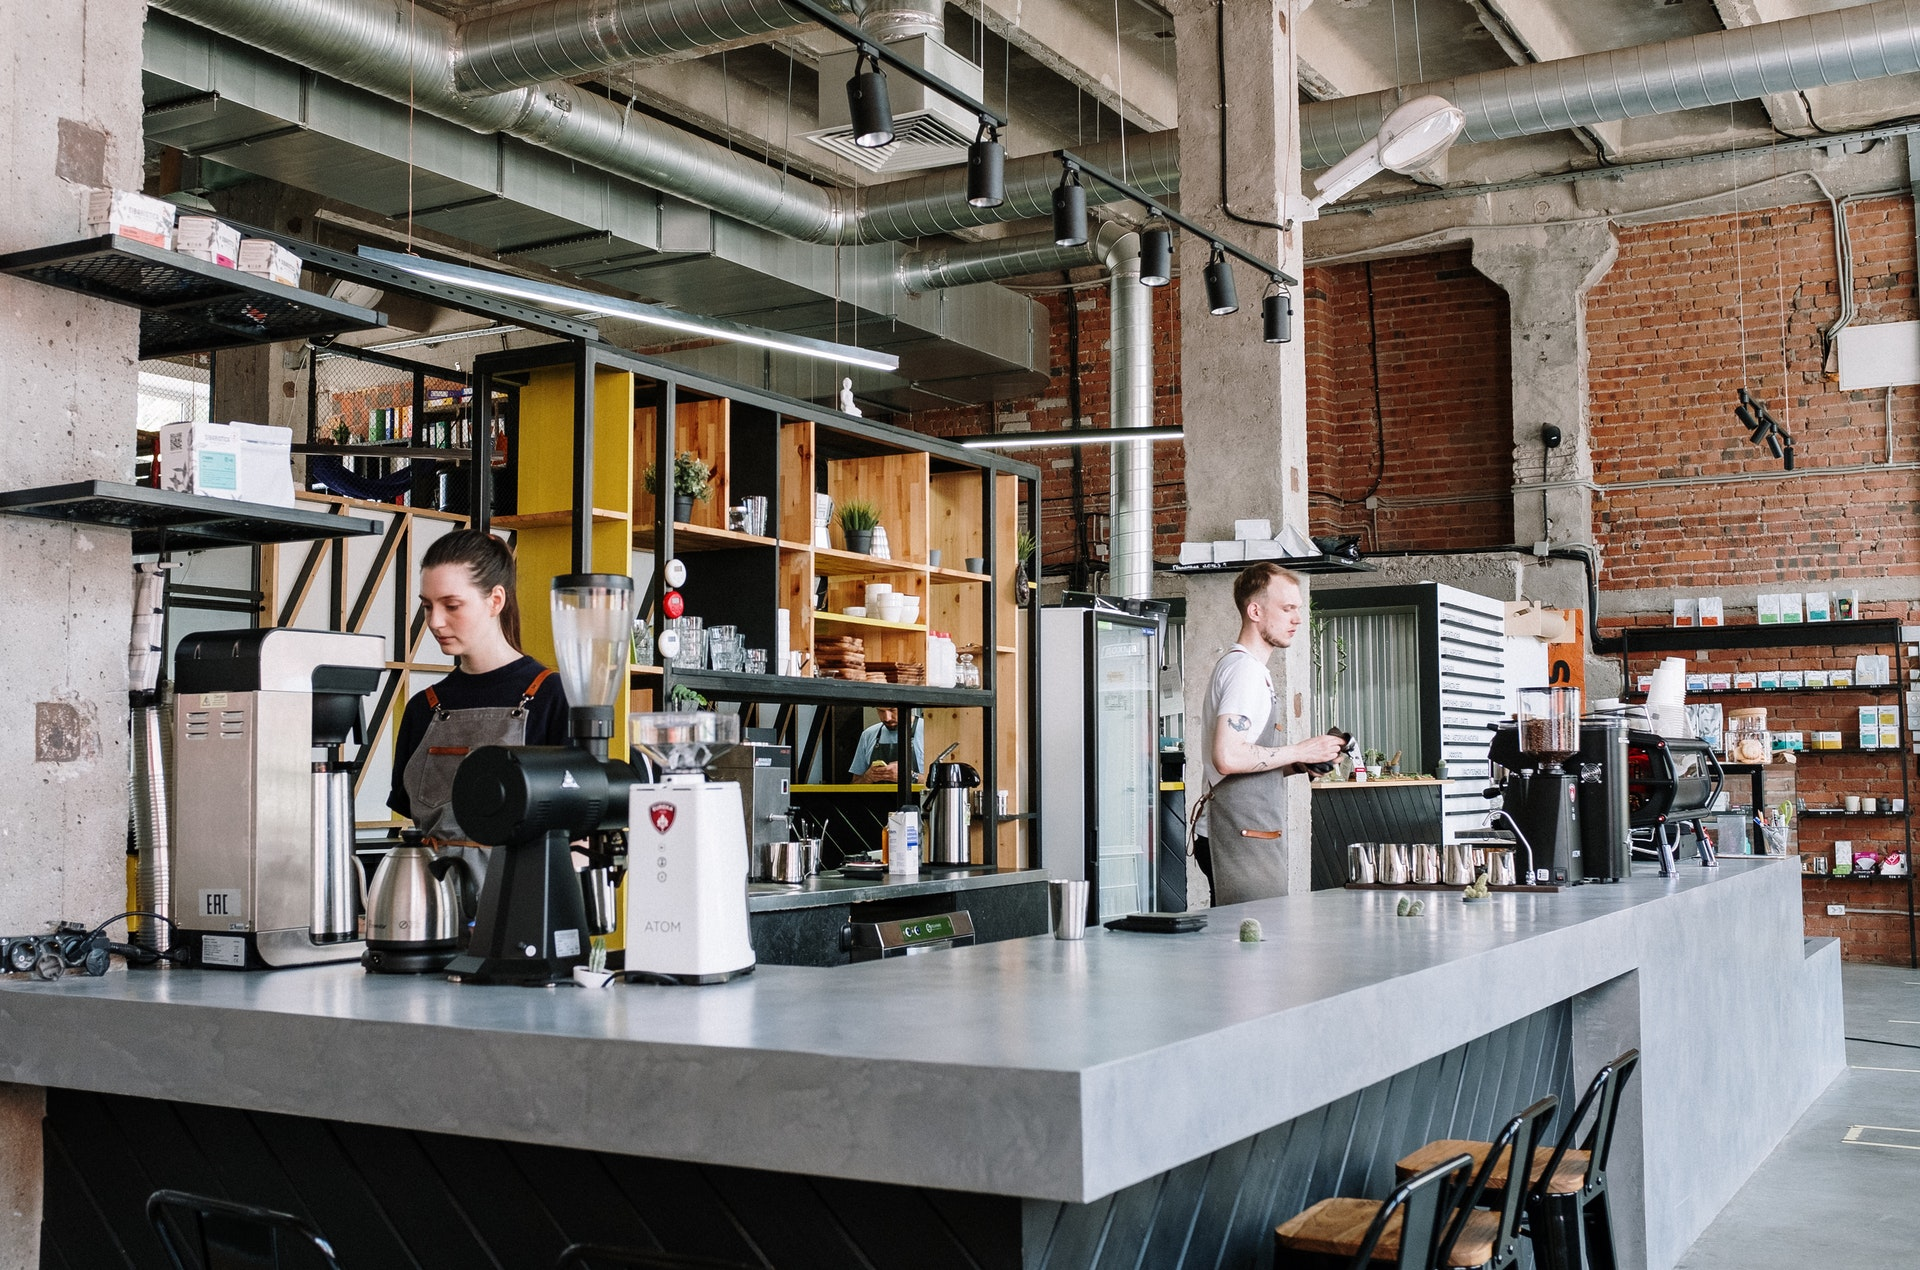 Coffee shop business that has properly maintained drains